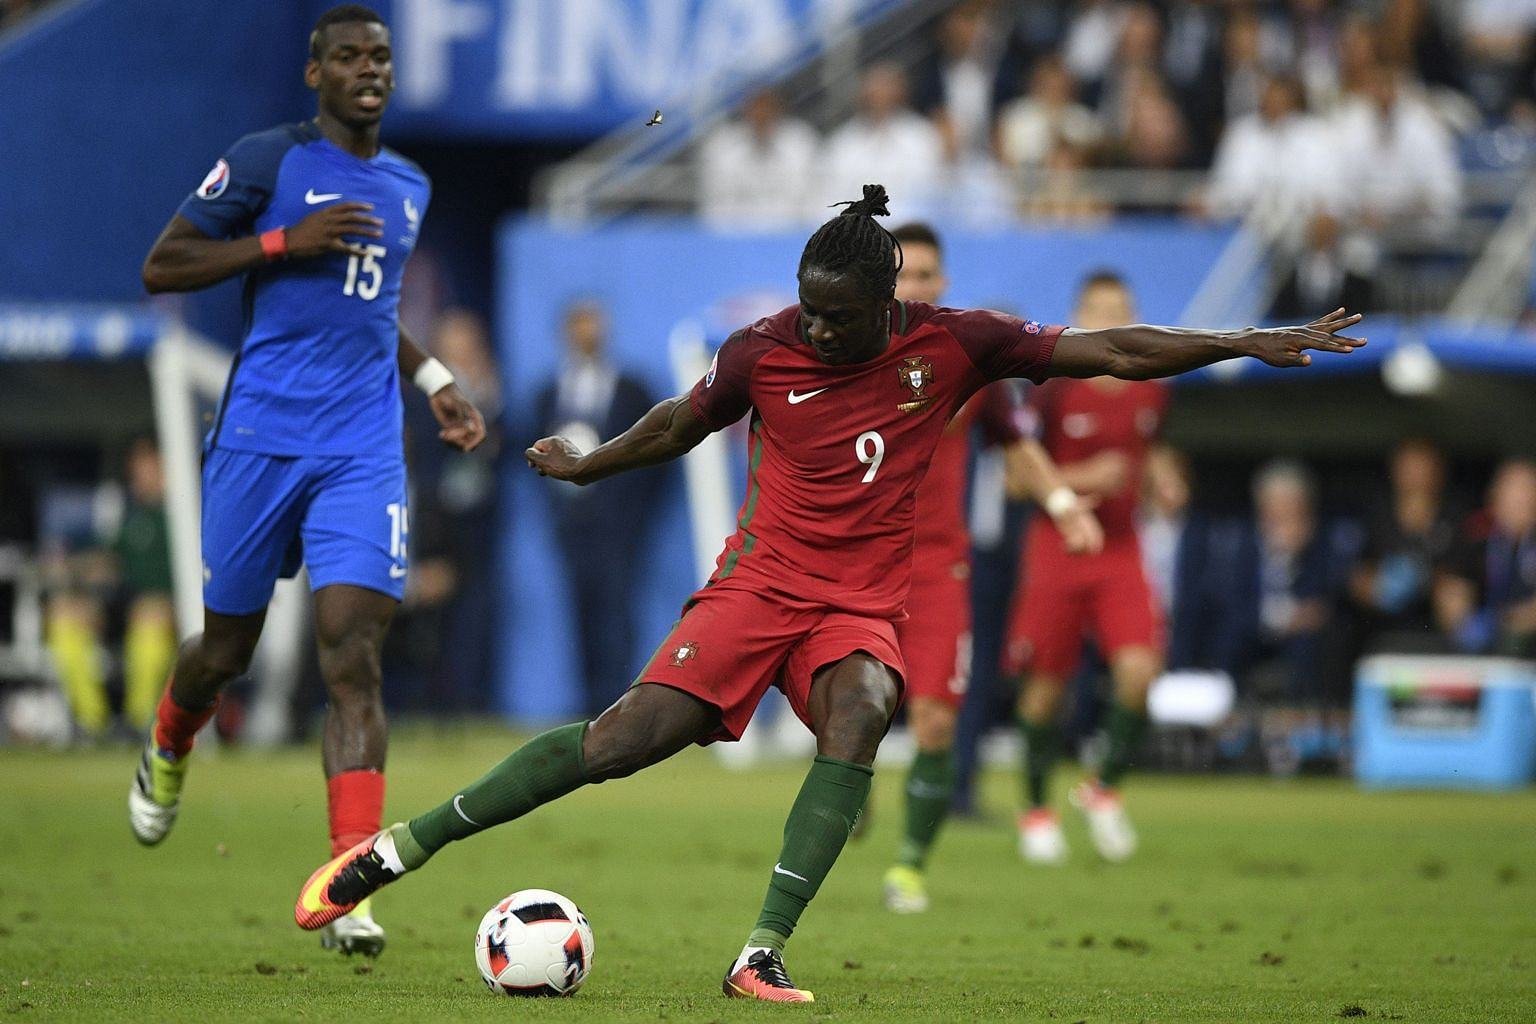 Portugal forward Eder (No. 9), widely regarded as a fringe player, scores for the underdogs against host nation France with 11 minutes remaining in extra time in the Euro 2016 final on Sunday.